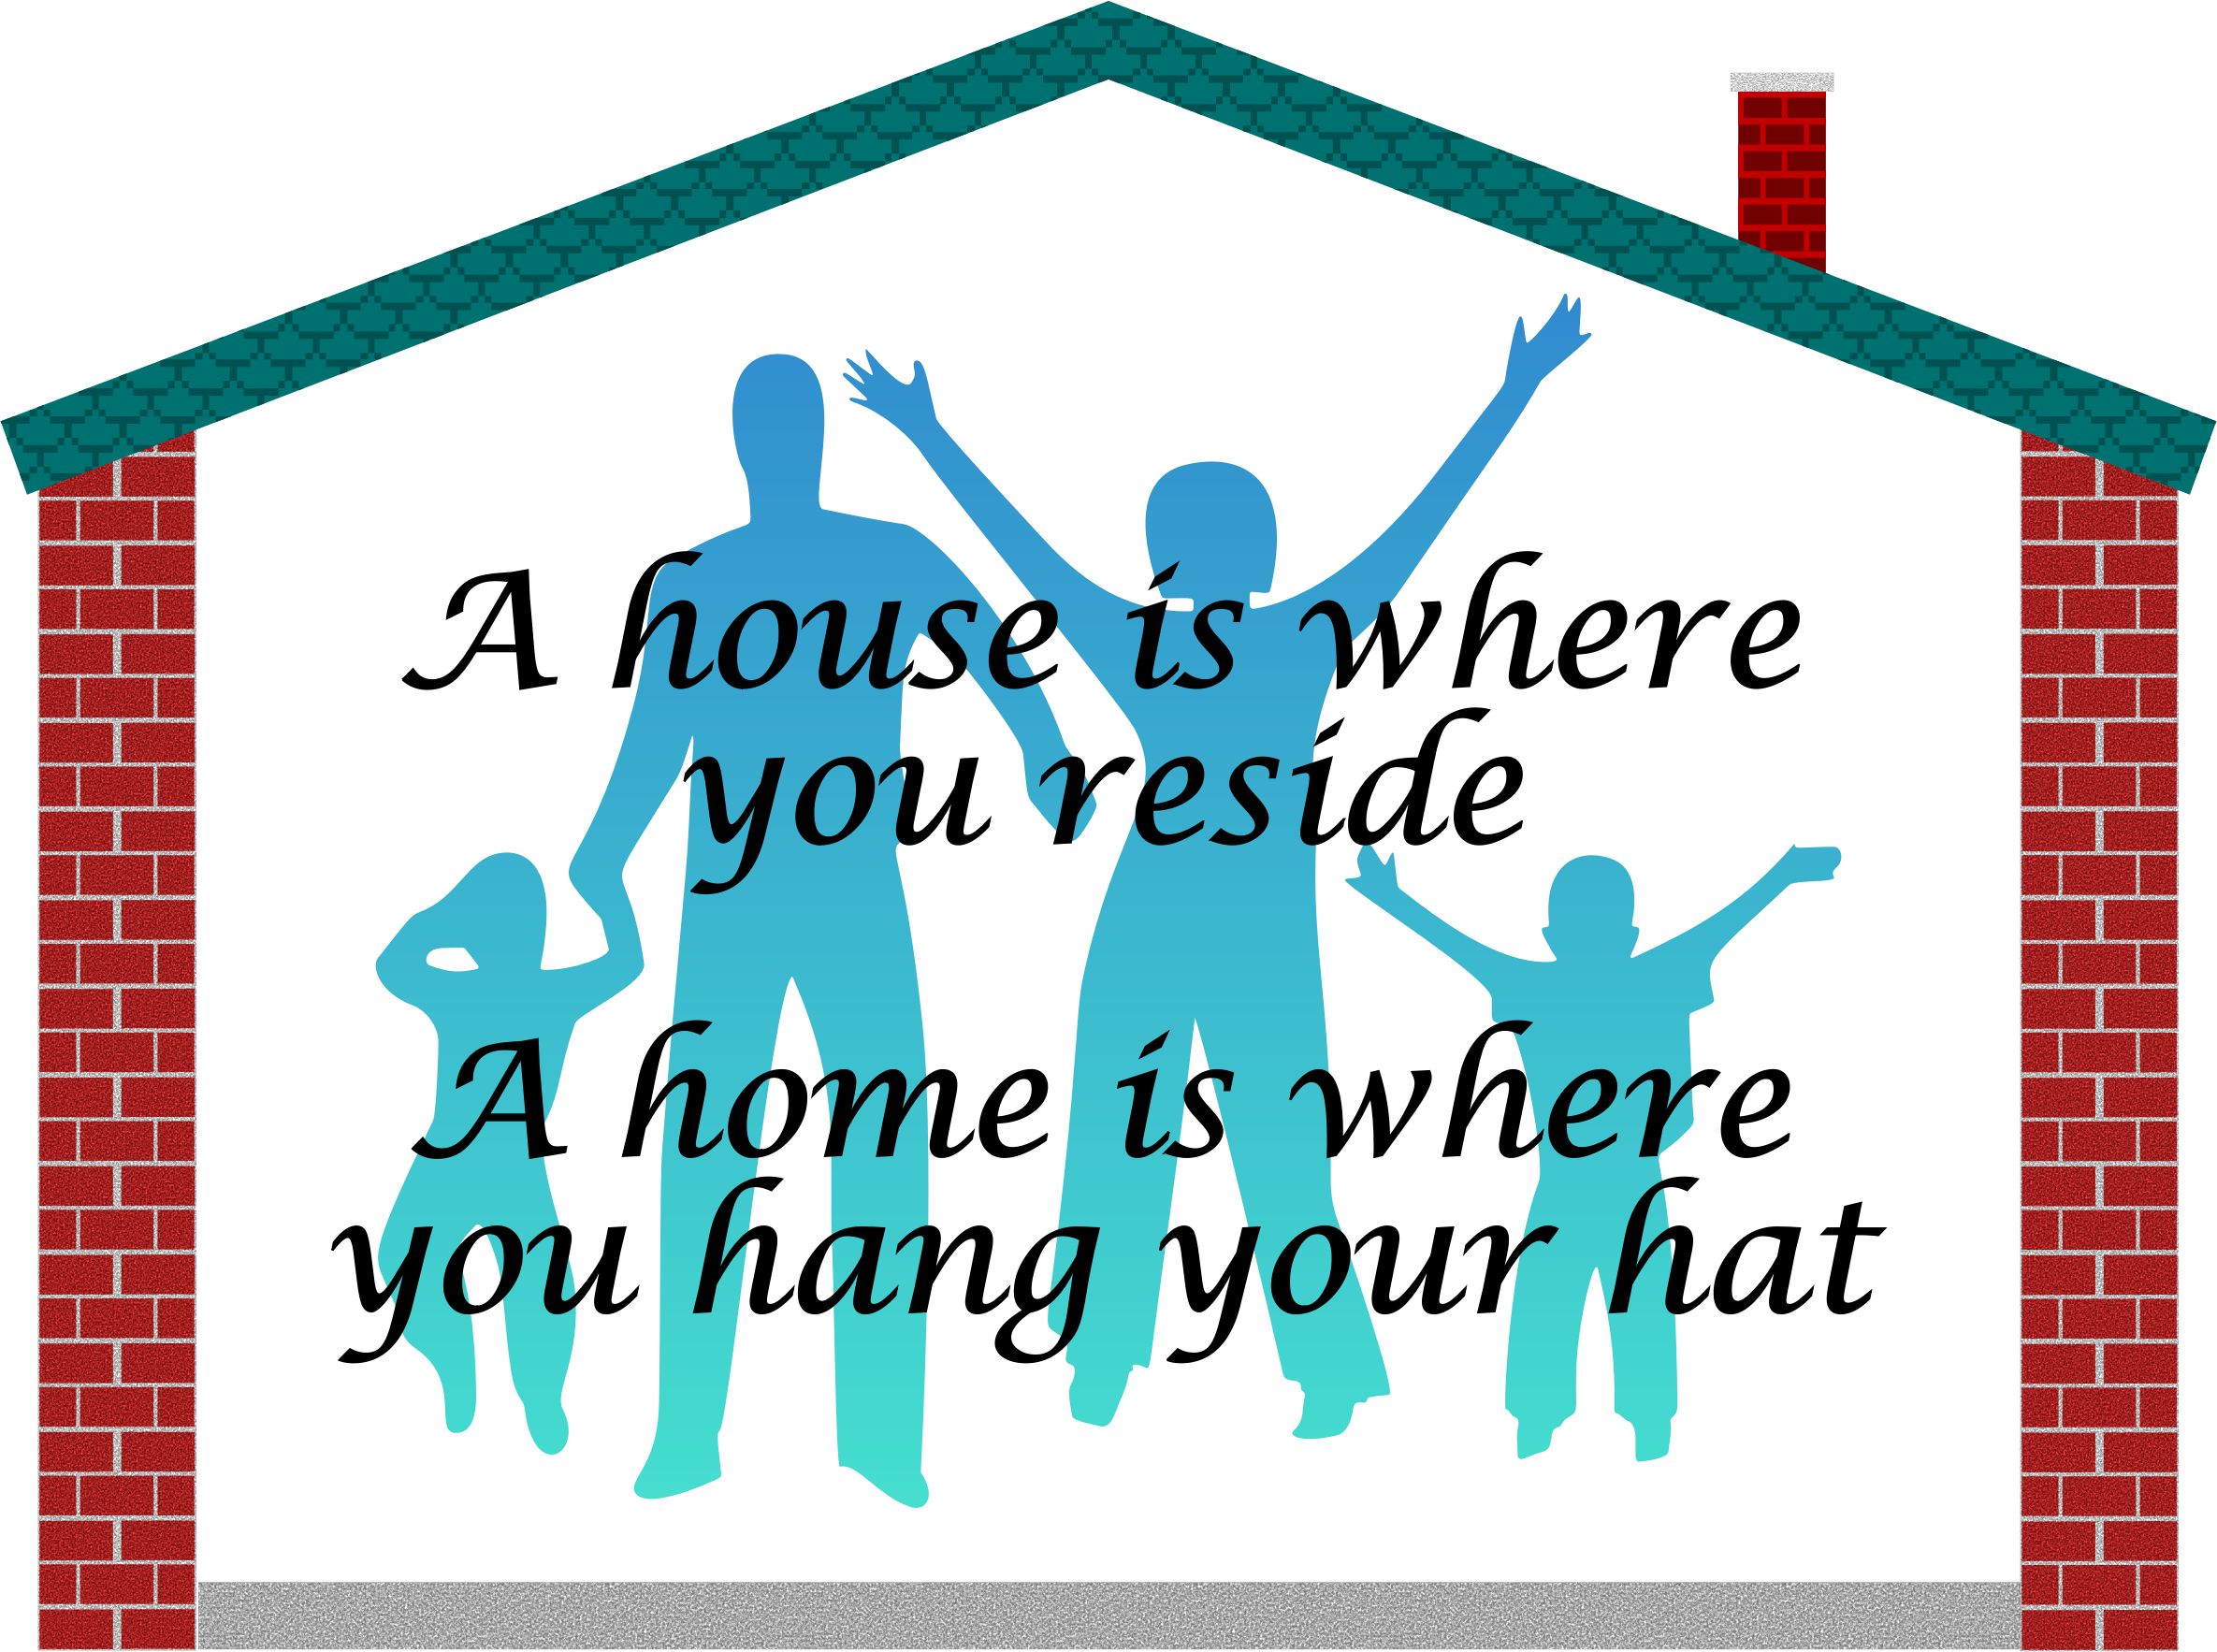 Family clipart home, Family home Transparent FREE for.